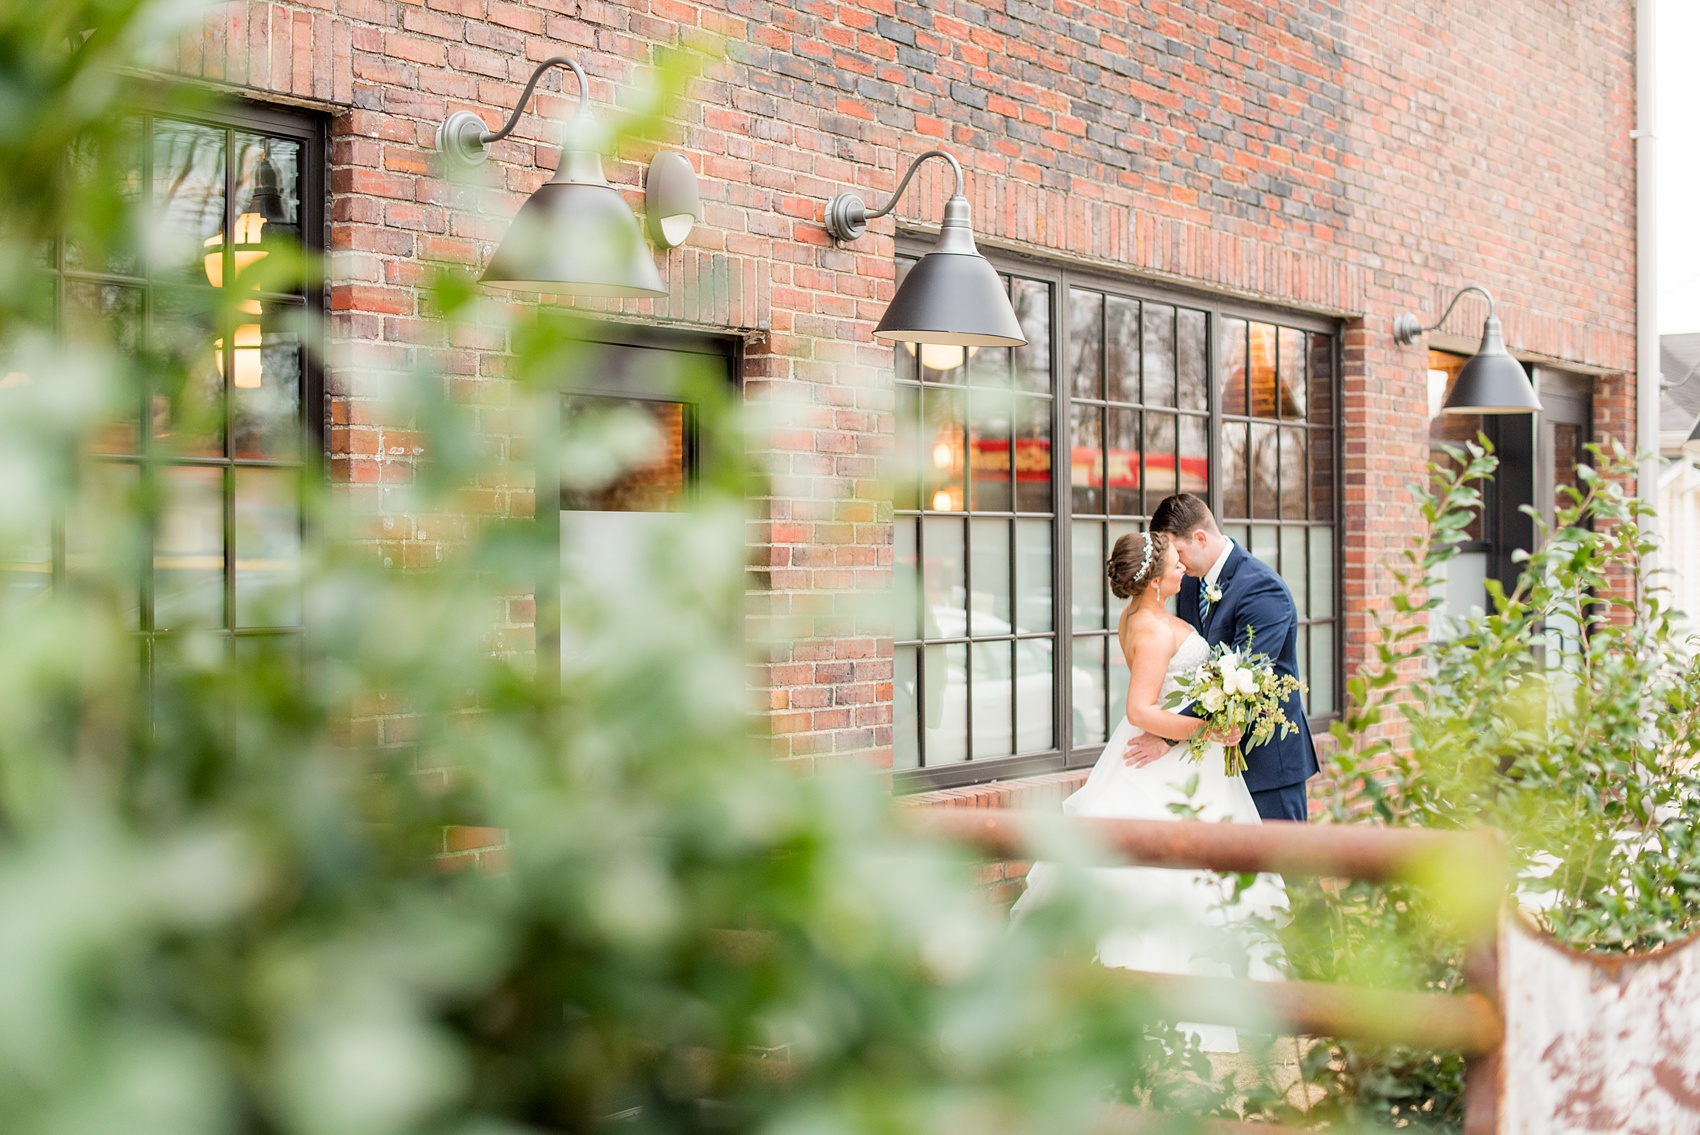 Durham wedding photos at The Cookery by Mikkel Paige Photography in North Carolina. The bride and groom stole a kiss in front of their brick, urban venue during their winter day.